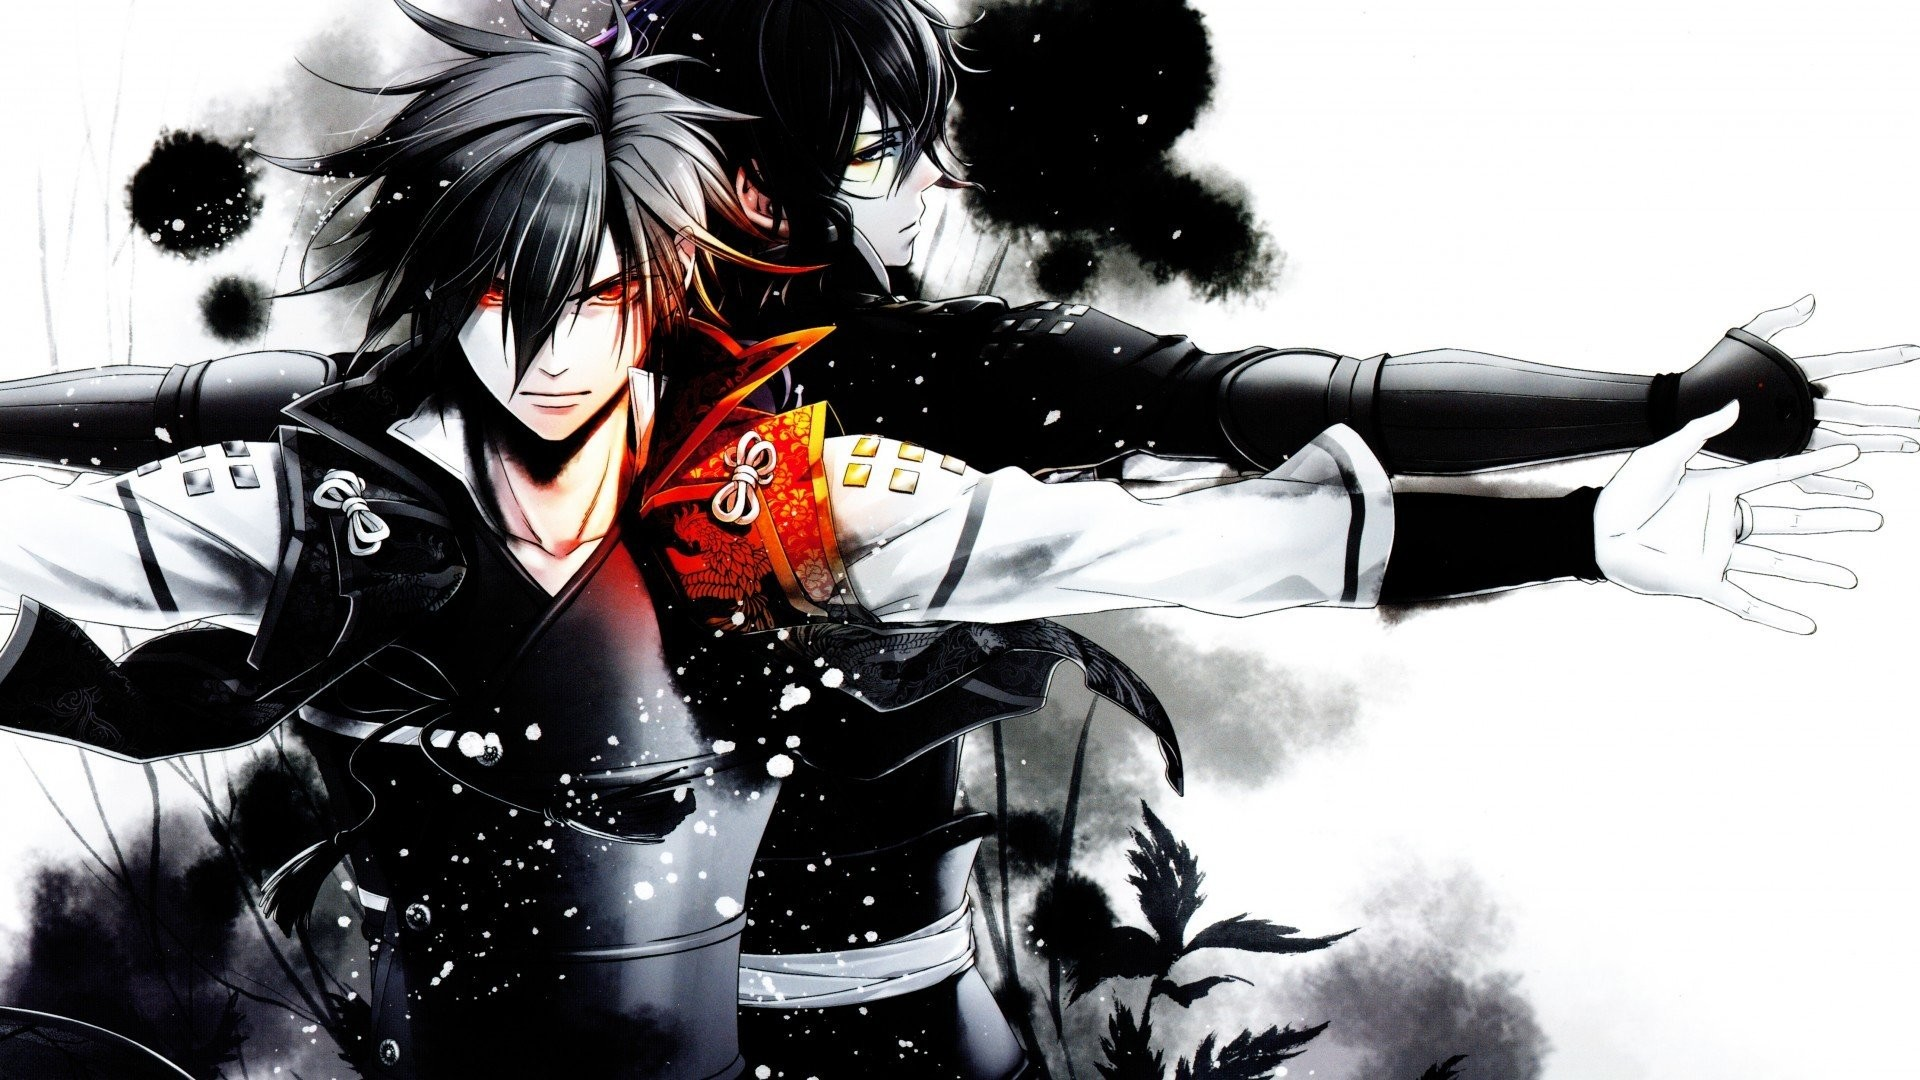 Badass anime wallpaper 65 images - Amazing wallpapers for boys ...